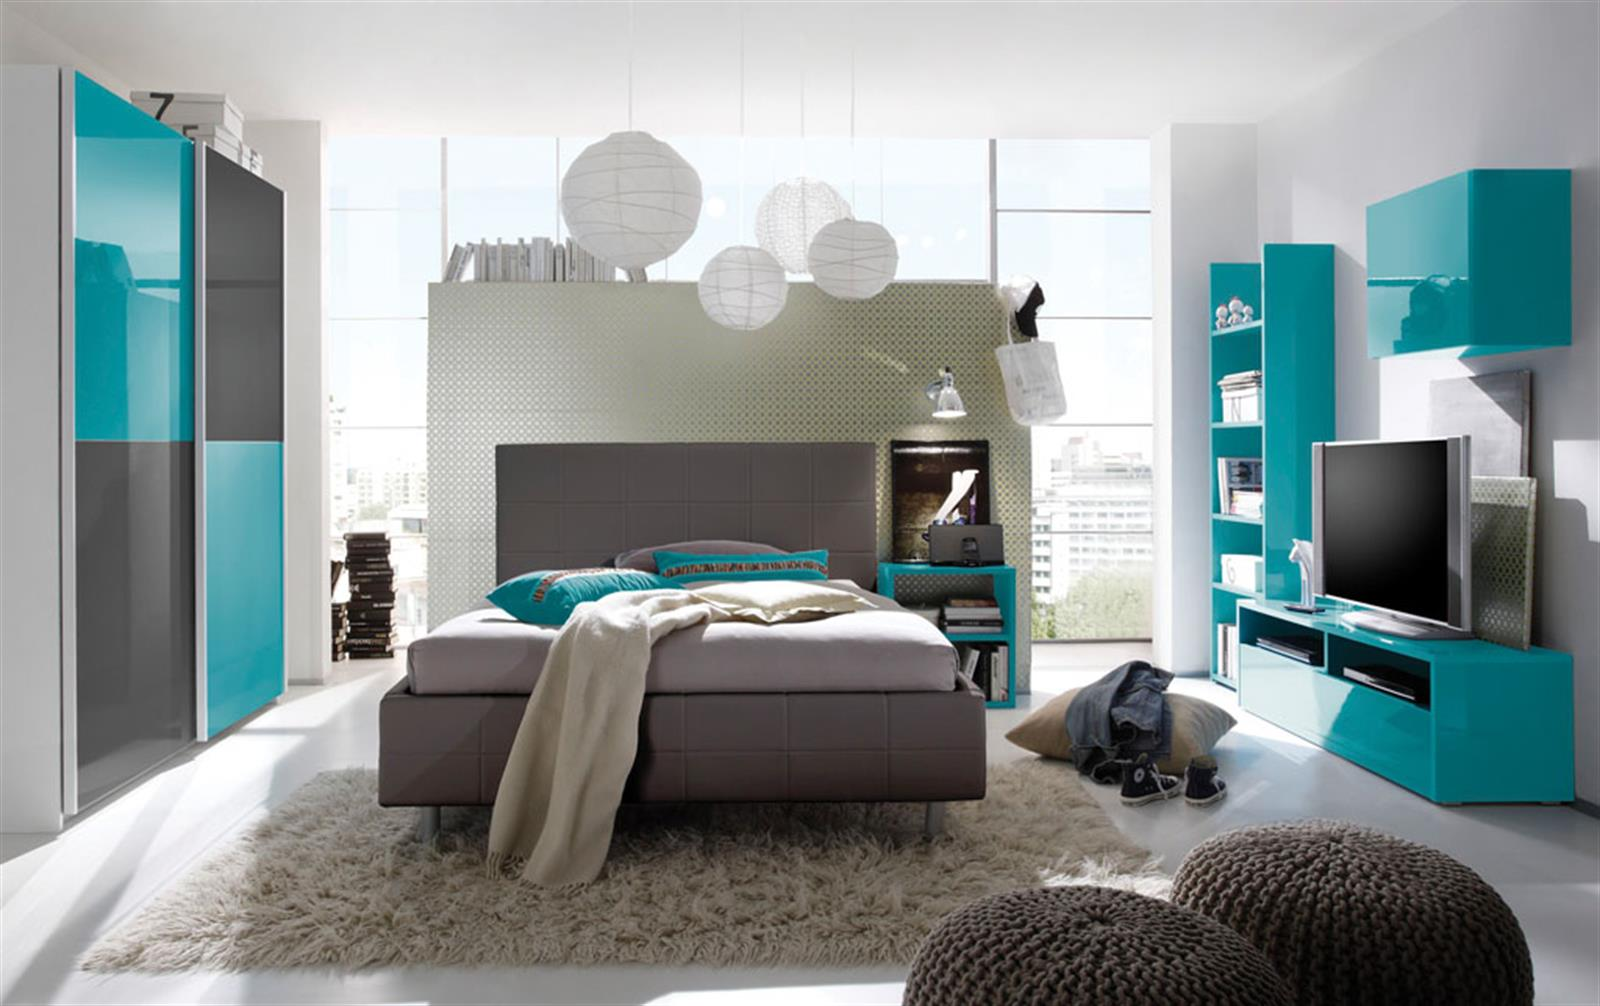 conforama mat riel informatique agencement d 39 int rieur editus. Black Bedroom Furniture Sets. Home Design Ideas